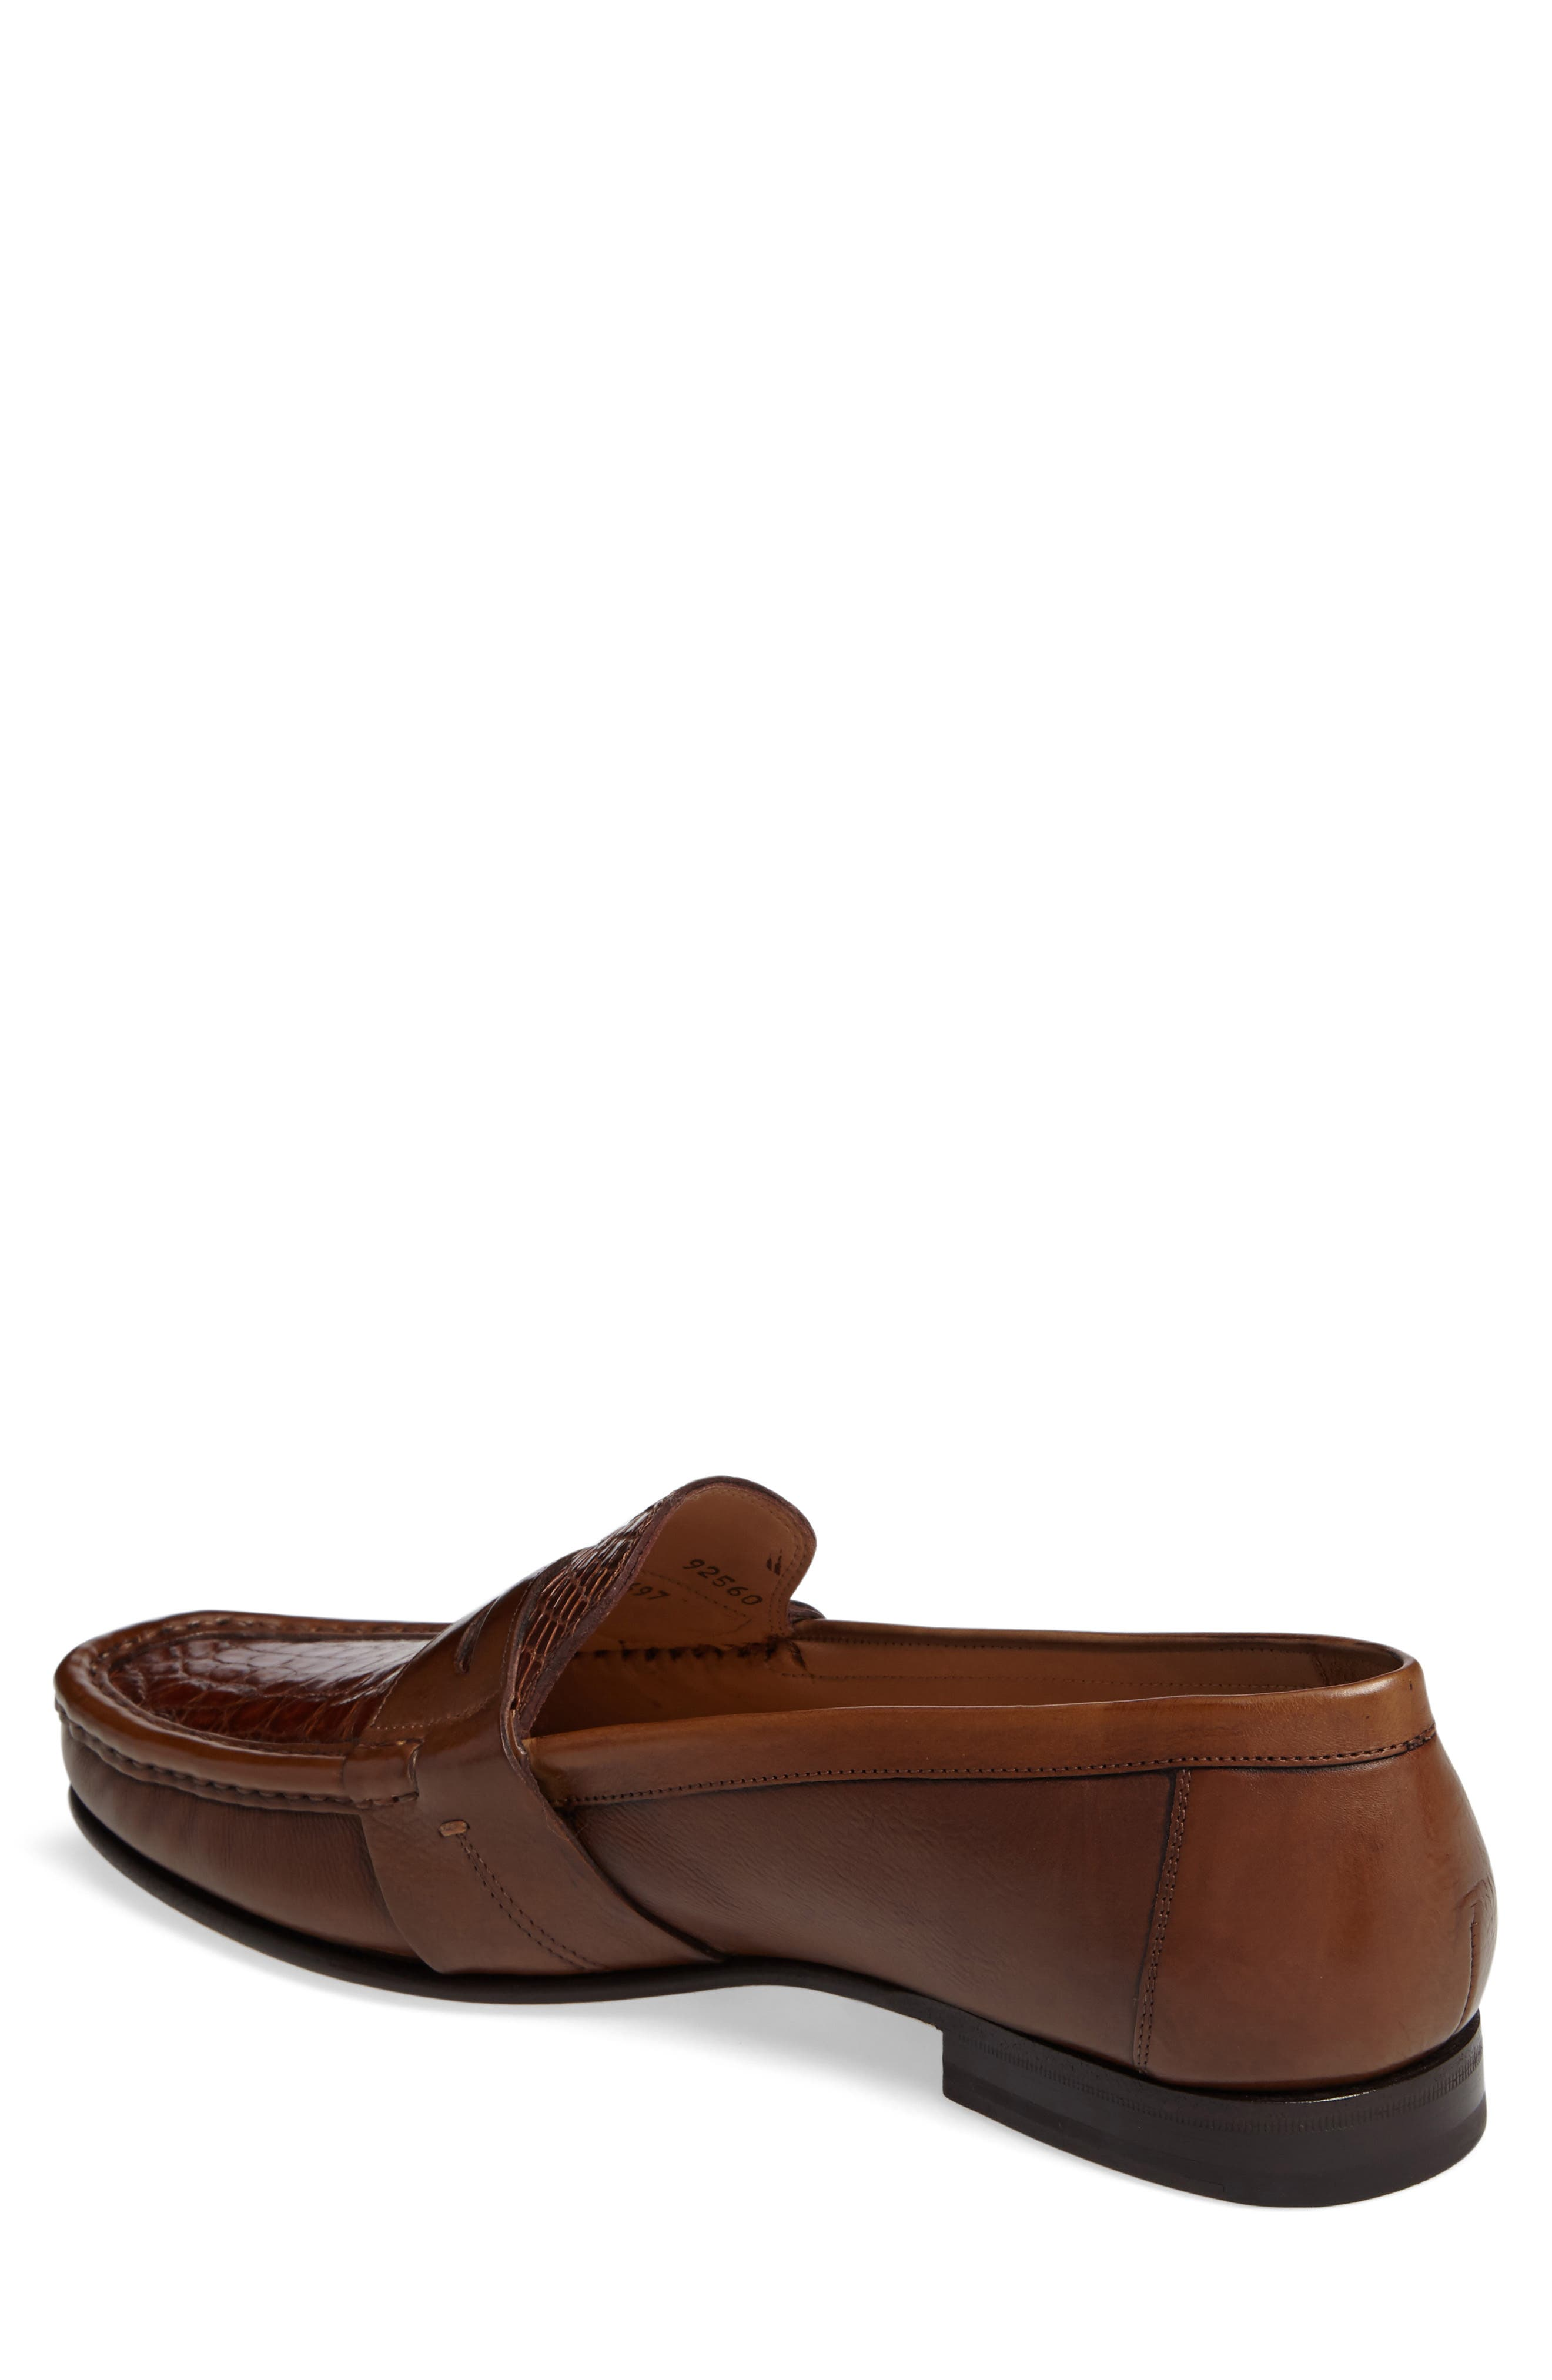 Marconi Penny Loafer,                             Alternate thumbnail 4, color,